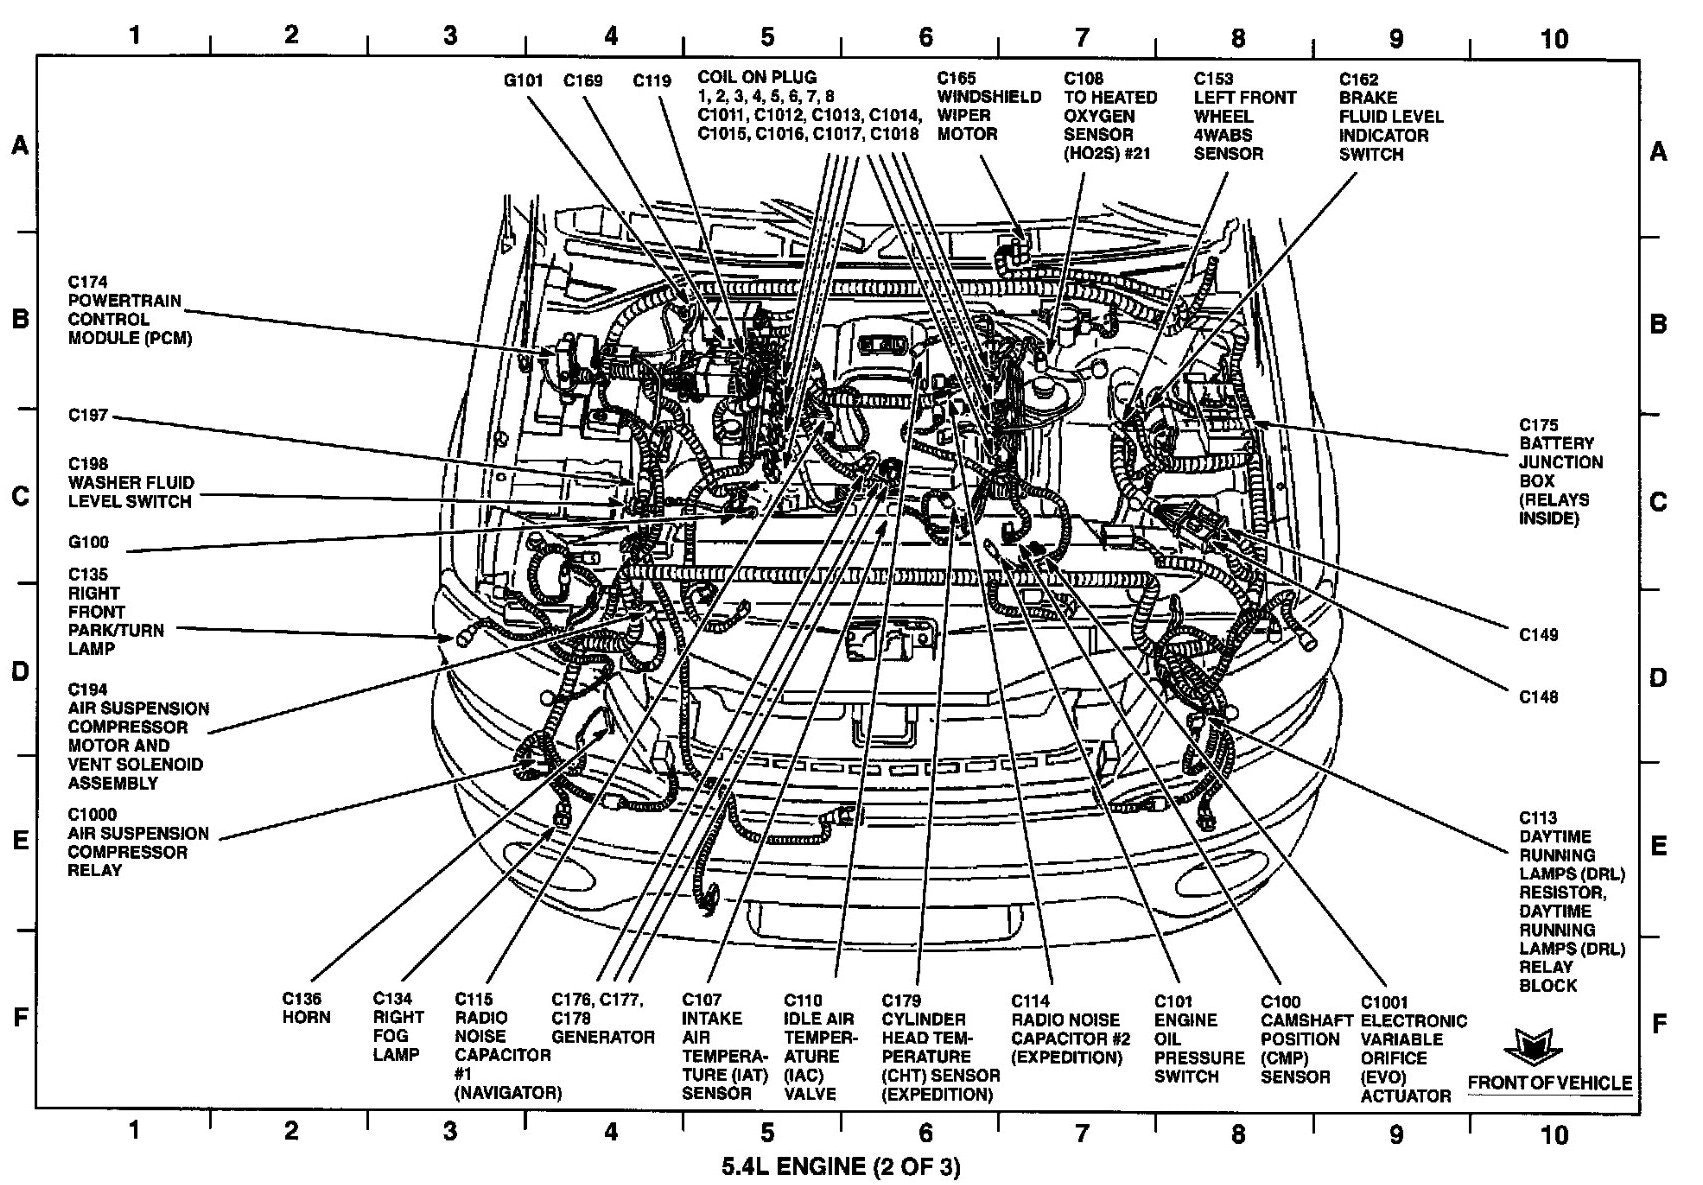 99 Ford E 350 Fuse Diagram Trusted Wiring 1997 E350 Box C1 01 Expedition Schematics Diagrams U2022 2010